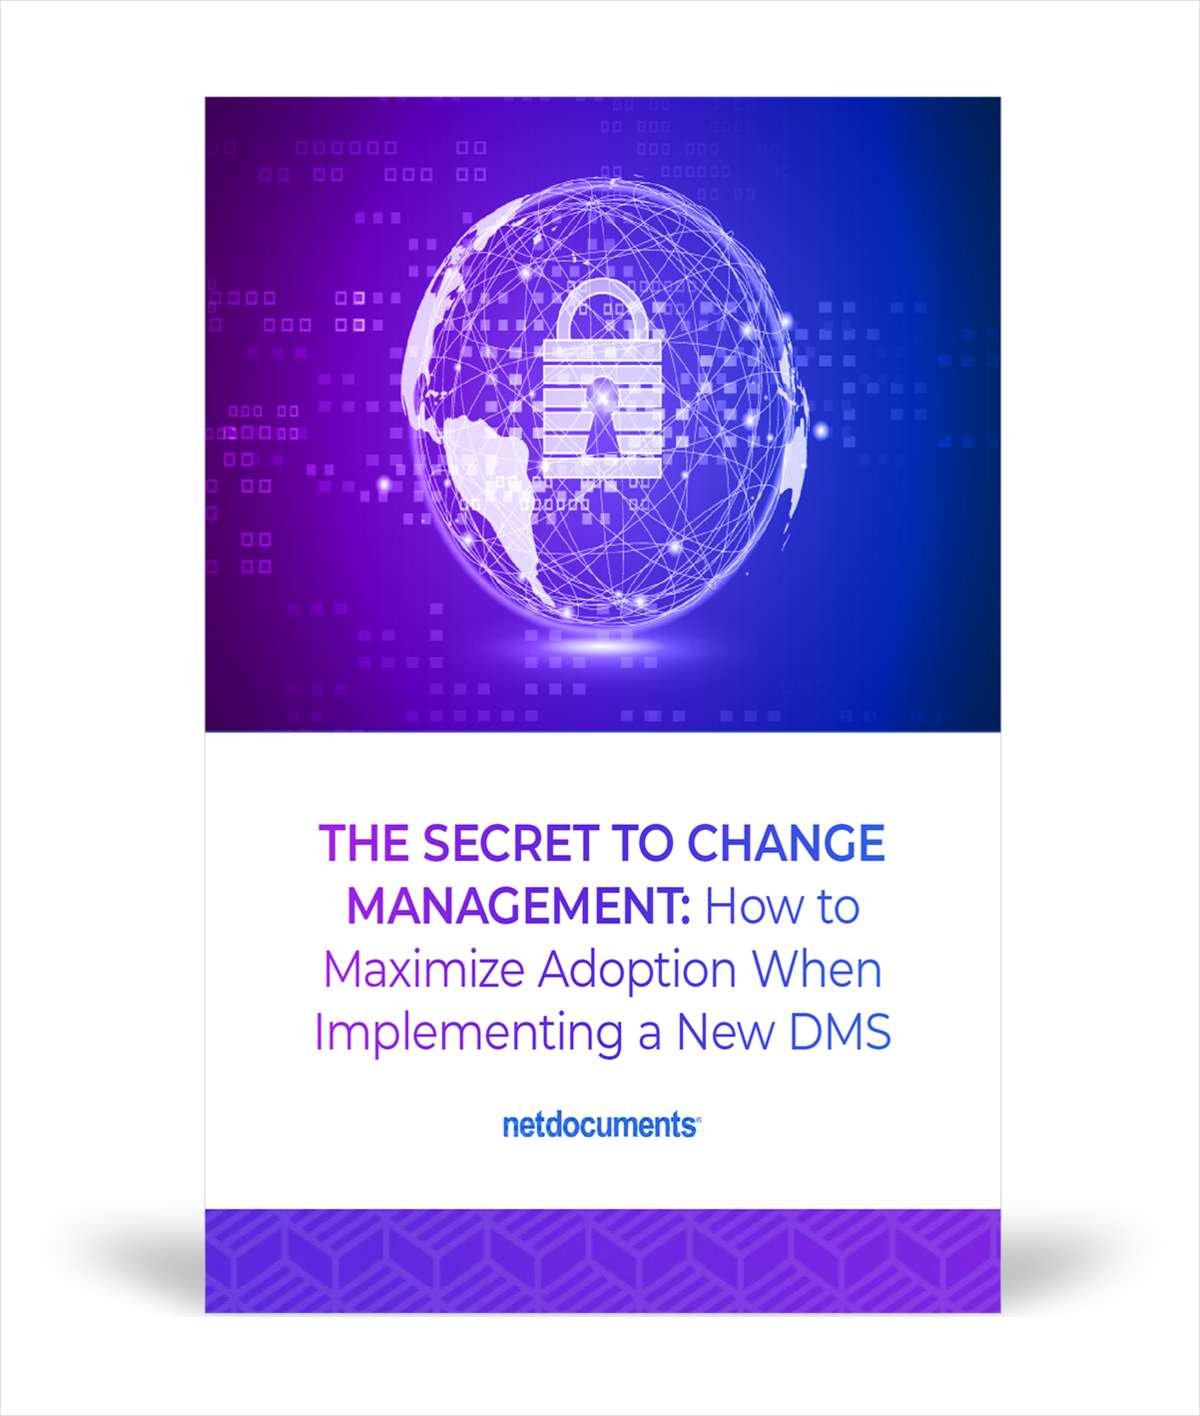 The Secret to Change Management: How to Maximize Adoption When Implementing a New DMS